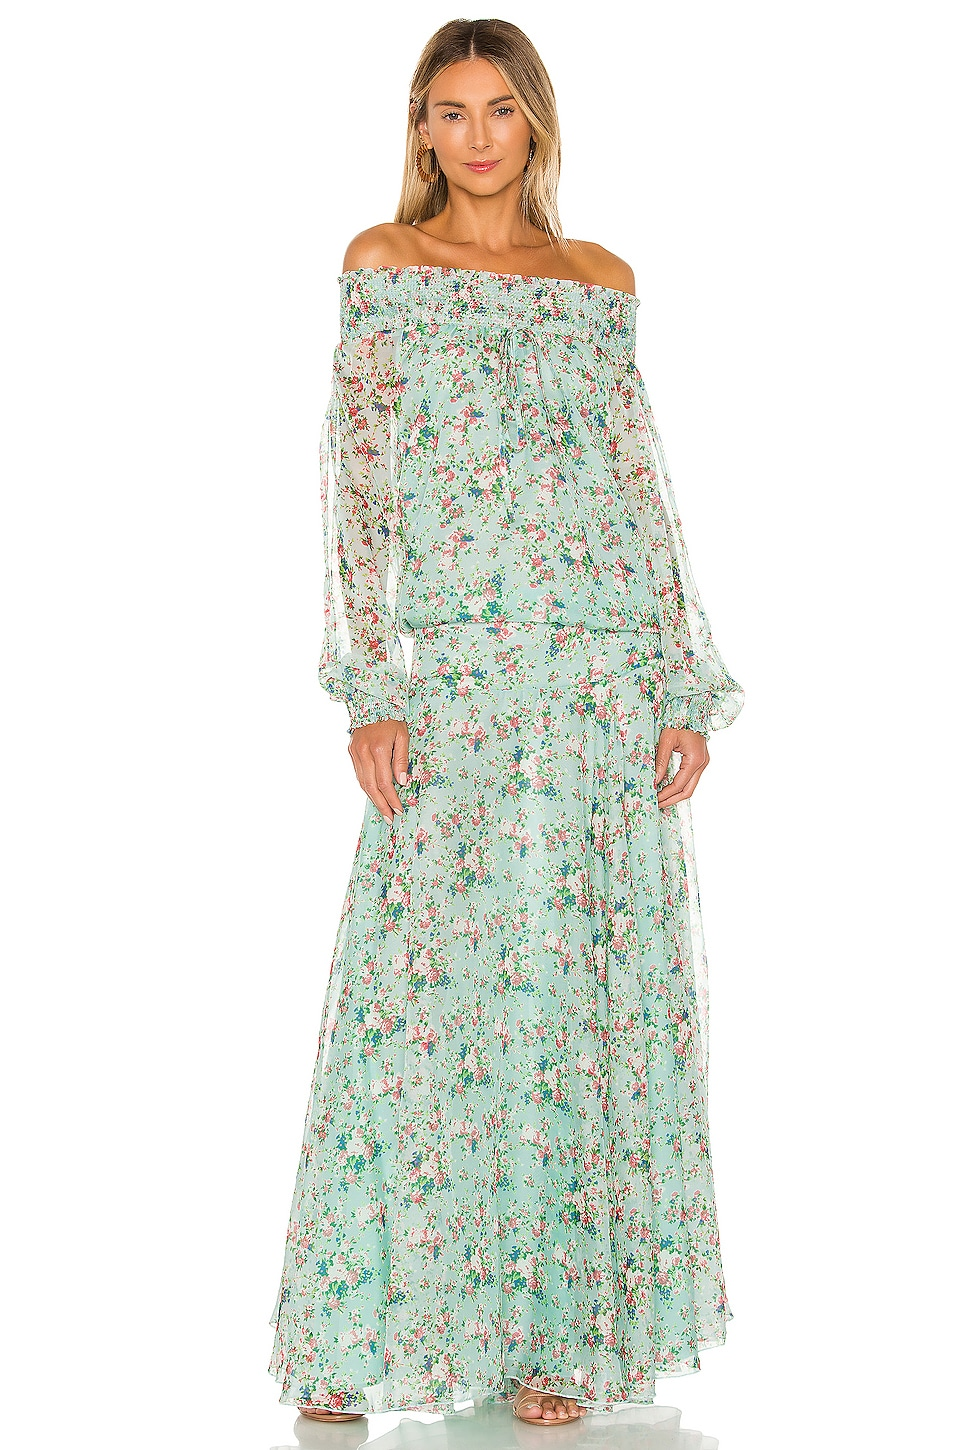 eywasouls malibu Monique Dress in Pale Blue Millefleur Print